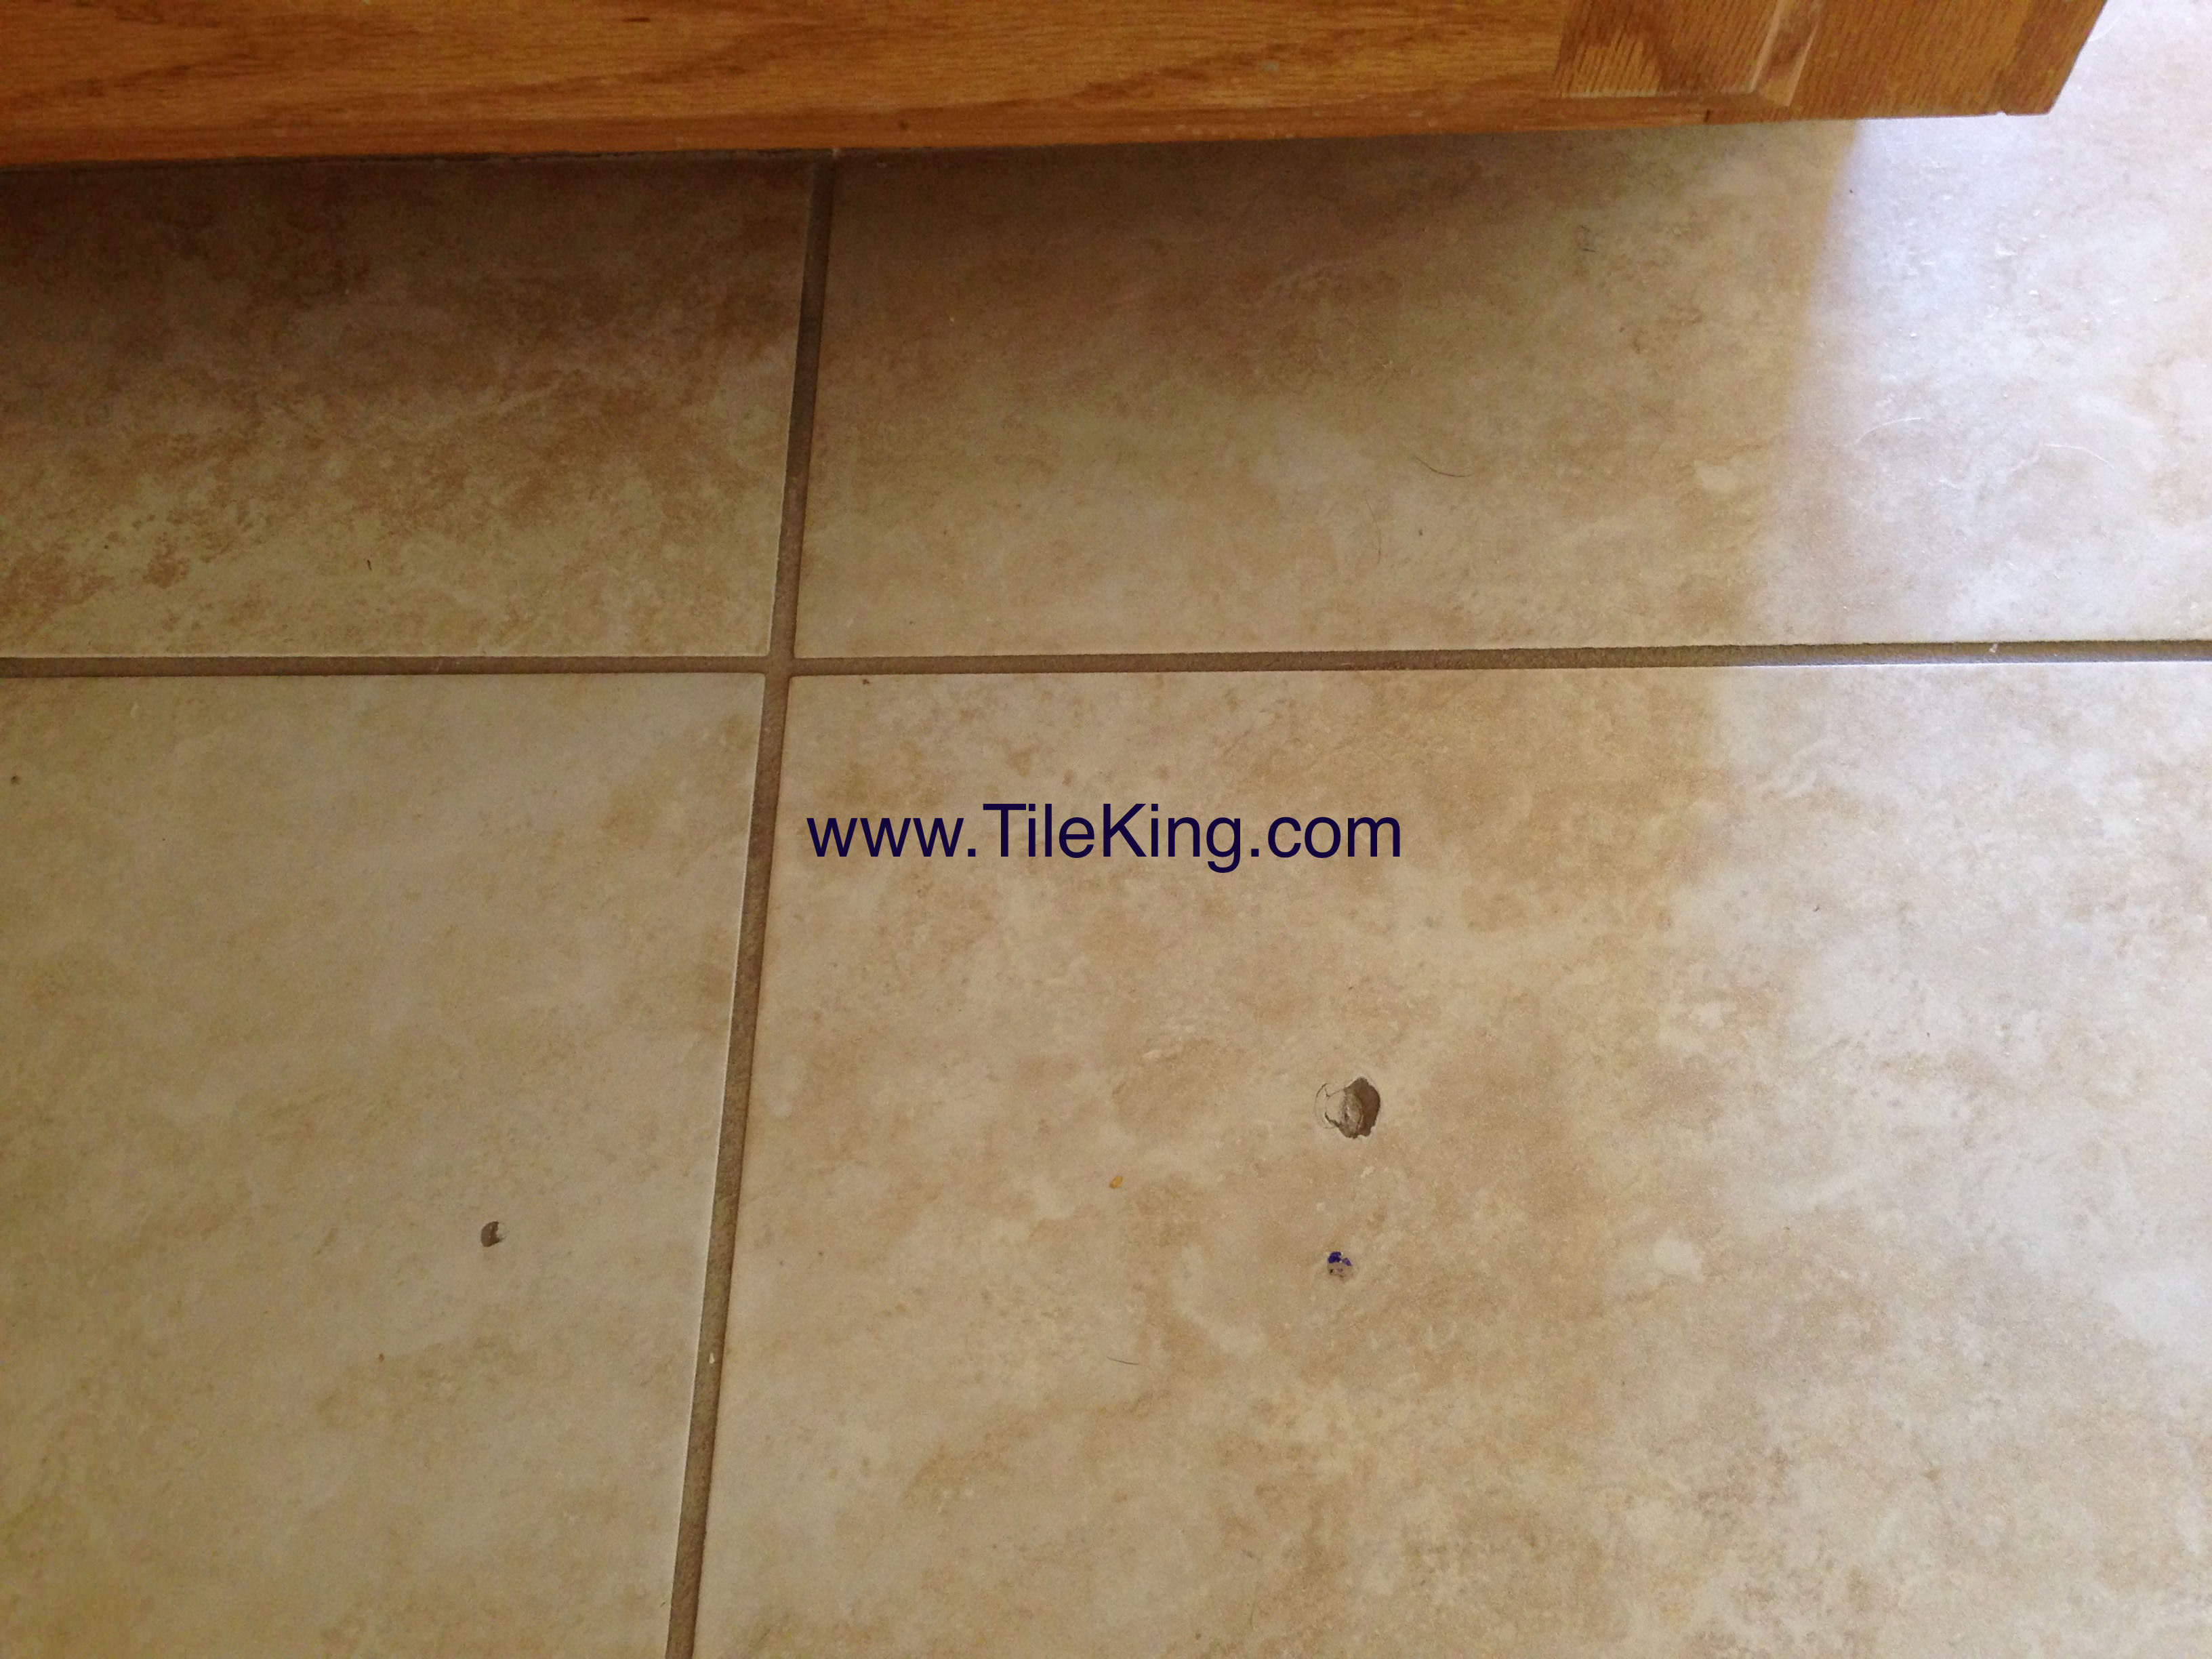 Repairing chipped floor tiles